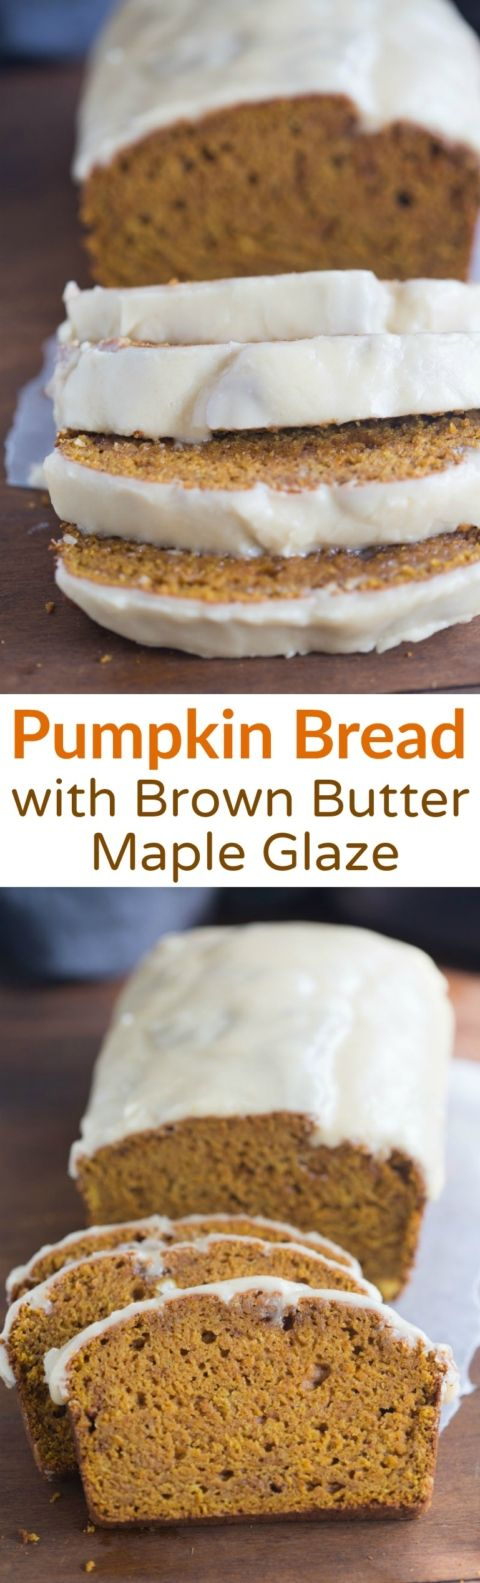 The BEST, incredibly moist pumpkin bread with a brown butter maple glaze that will have you swooning with every bite! | Tastes Better From Scratch